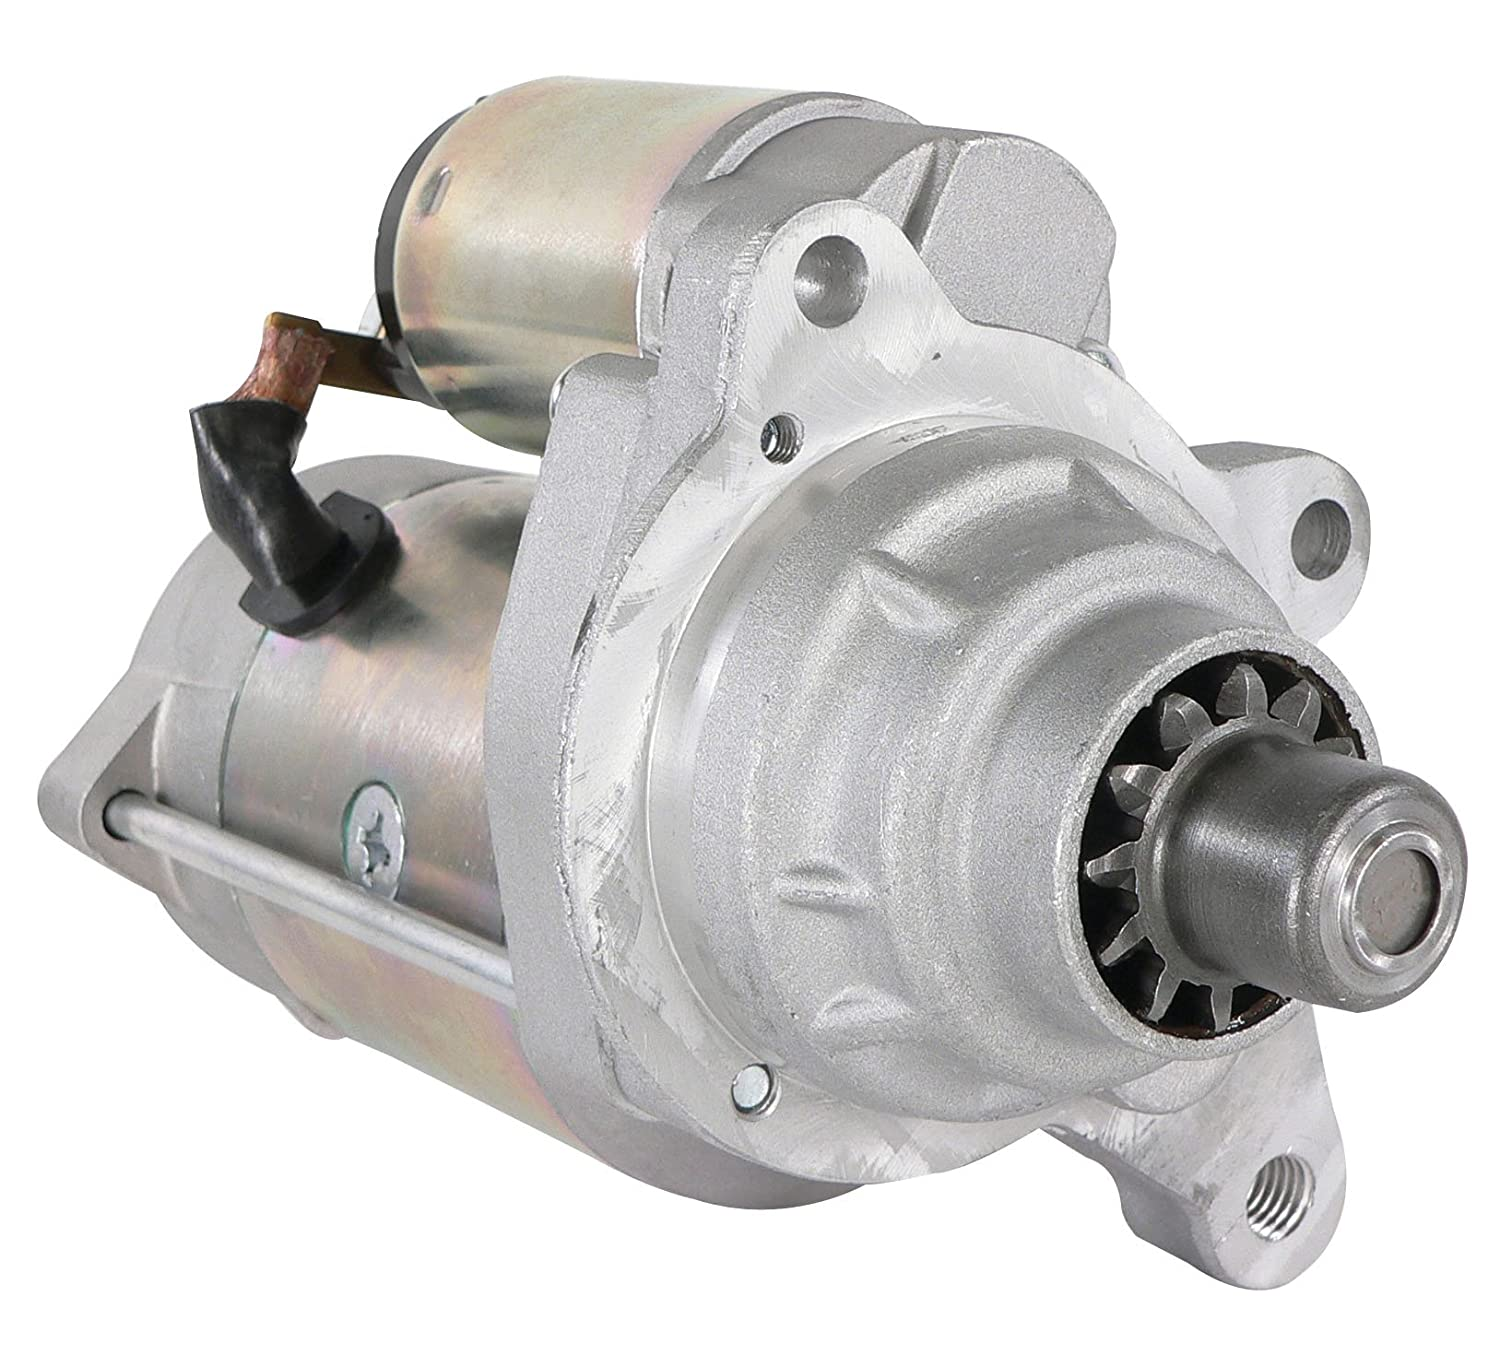 Db Electrical Sfd0094 New Starter For Ford Truck Diesel 2007 F150 Location 60l 60 F Series 03 04 05 06 07 Excursion F450 F550 Super Duty